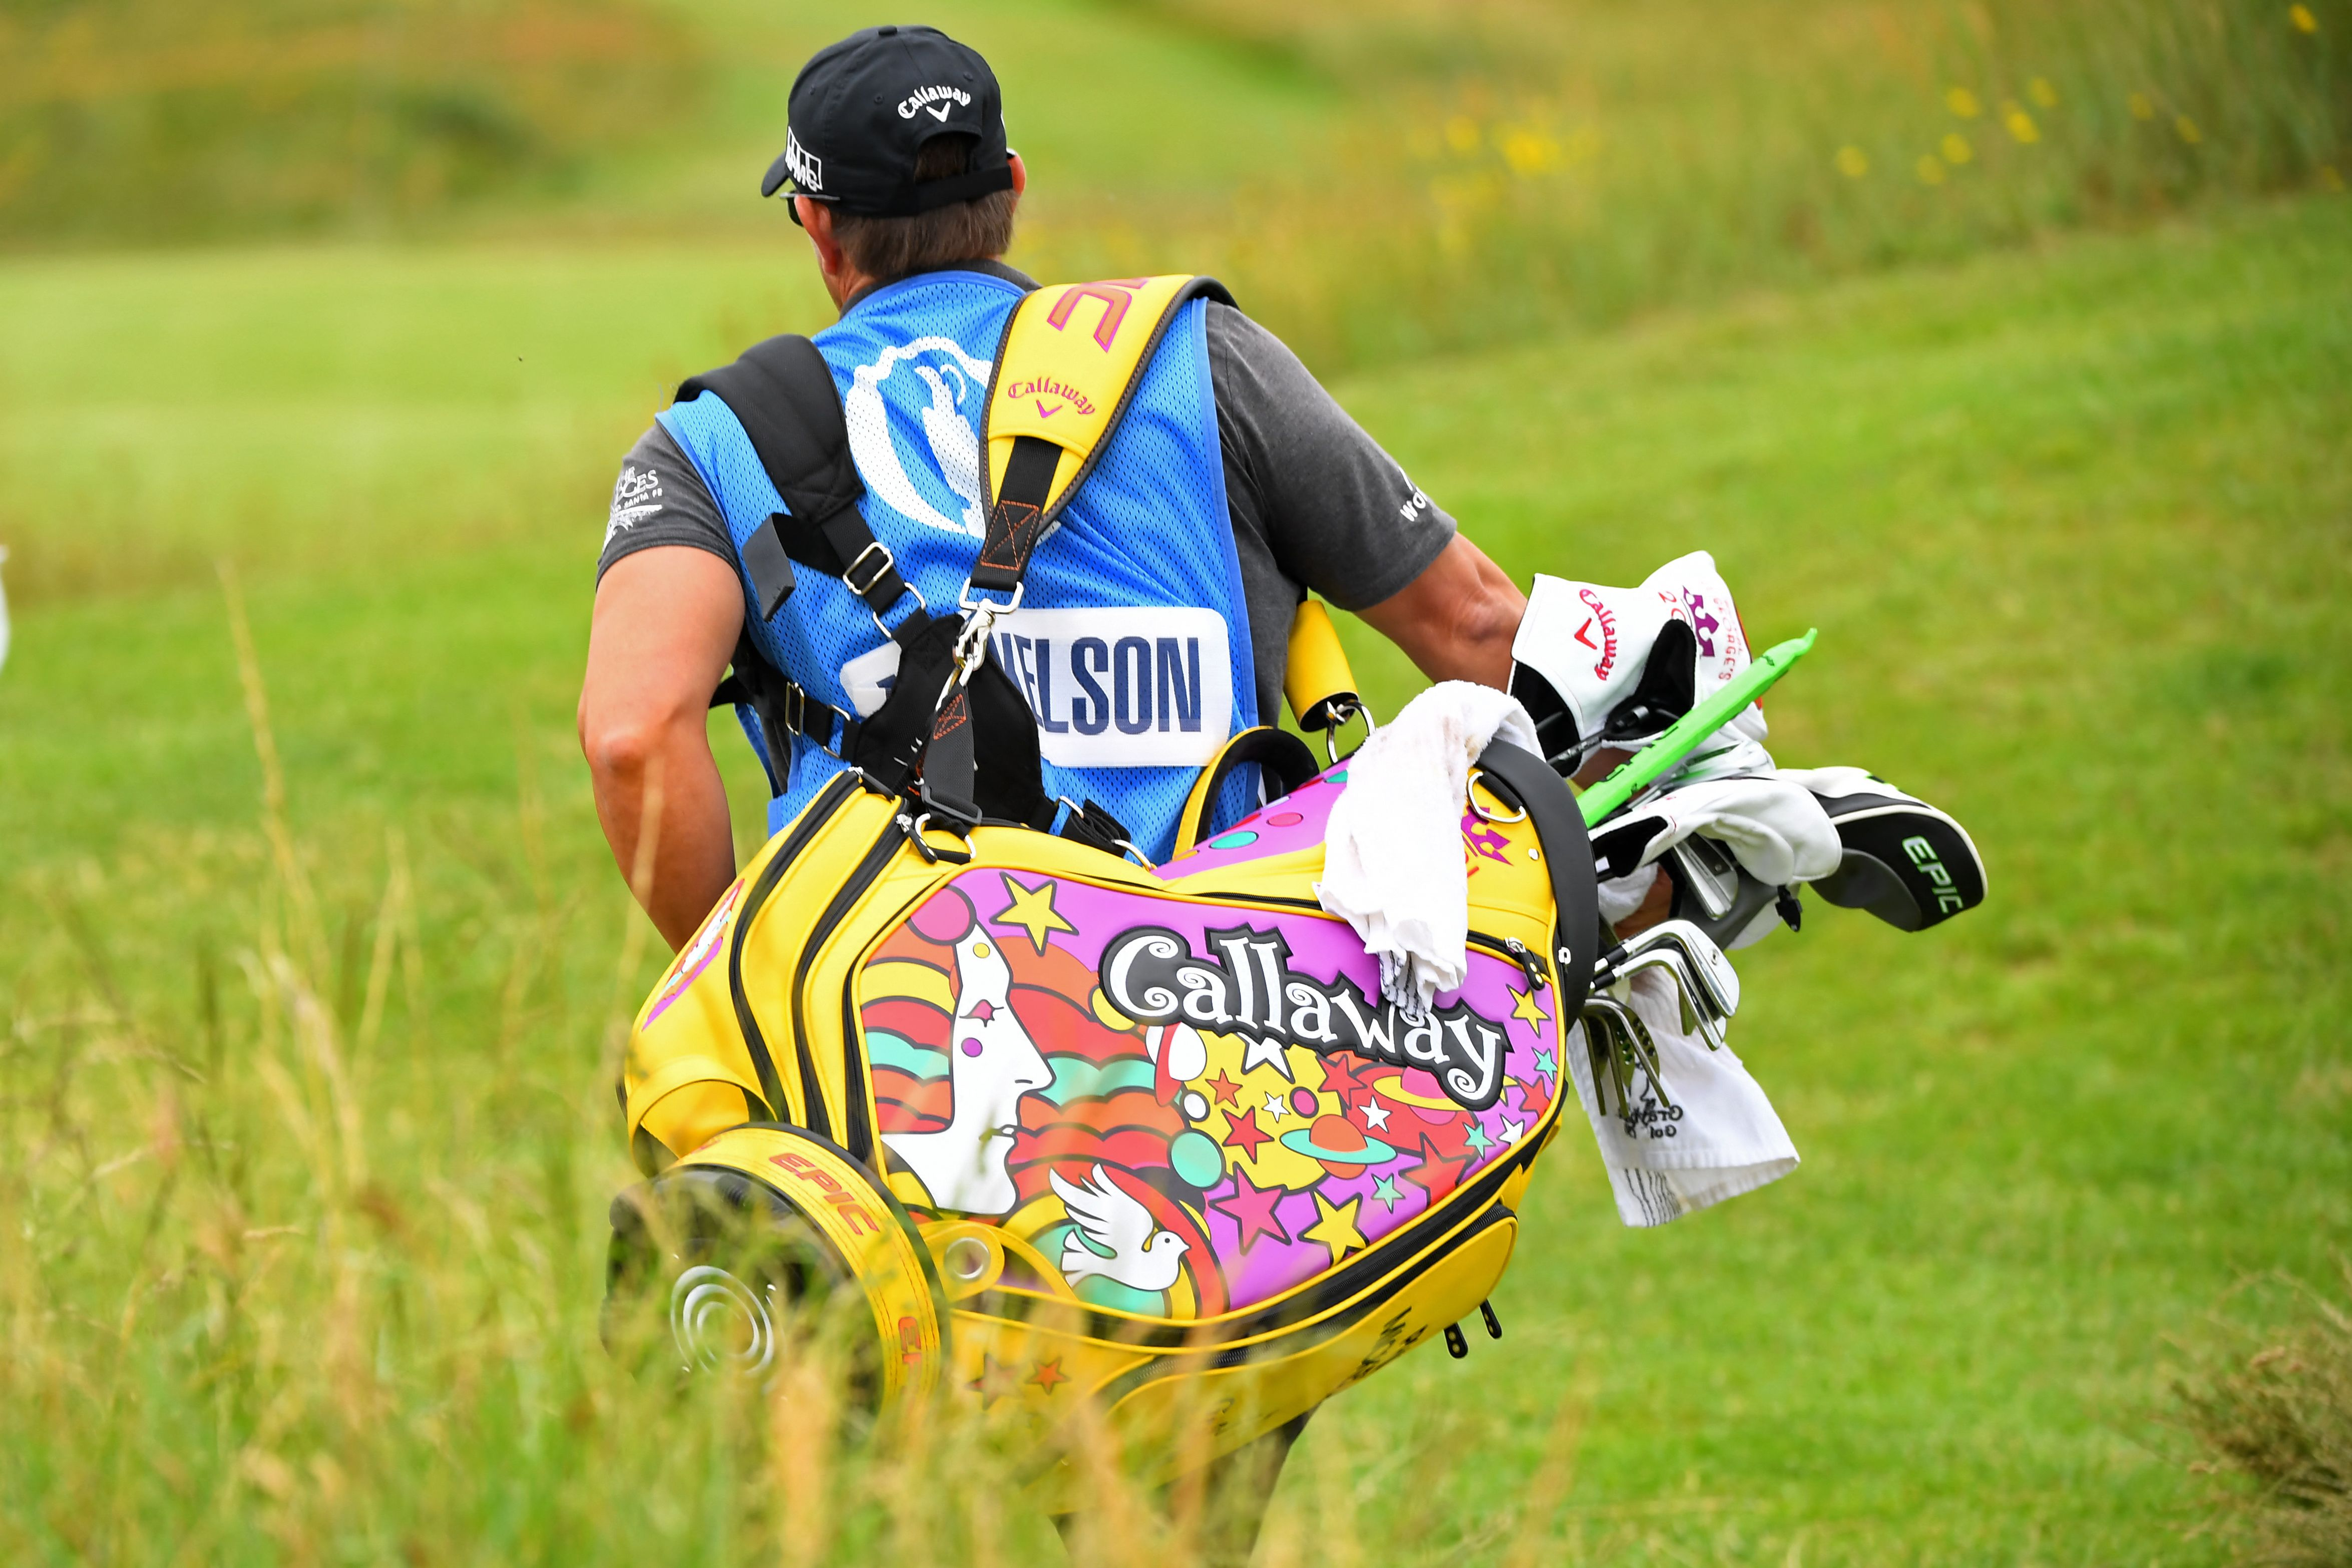 <p>US golfer Phil Mickelson's golf bag is pictured during a practice round for The 149th British Open Golf Championship at Royal St George's, Sandwich in south-east England on July 12, 2021. - RESTRICTED TO EDITORIAL USE (Photo by ANDY BUCHANAN / AFP) / RESTRICTED TO EDITORIAL USE (Photo by ANDY BUCHANAN/AFP via Getty Images)</p>